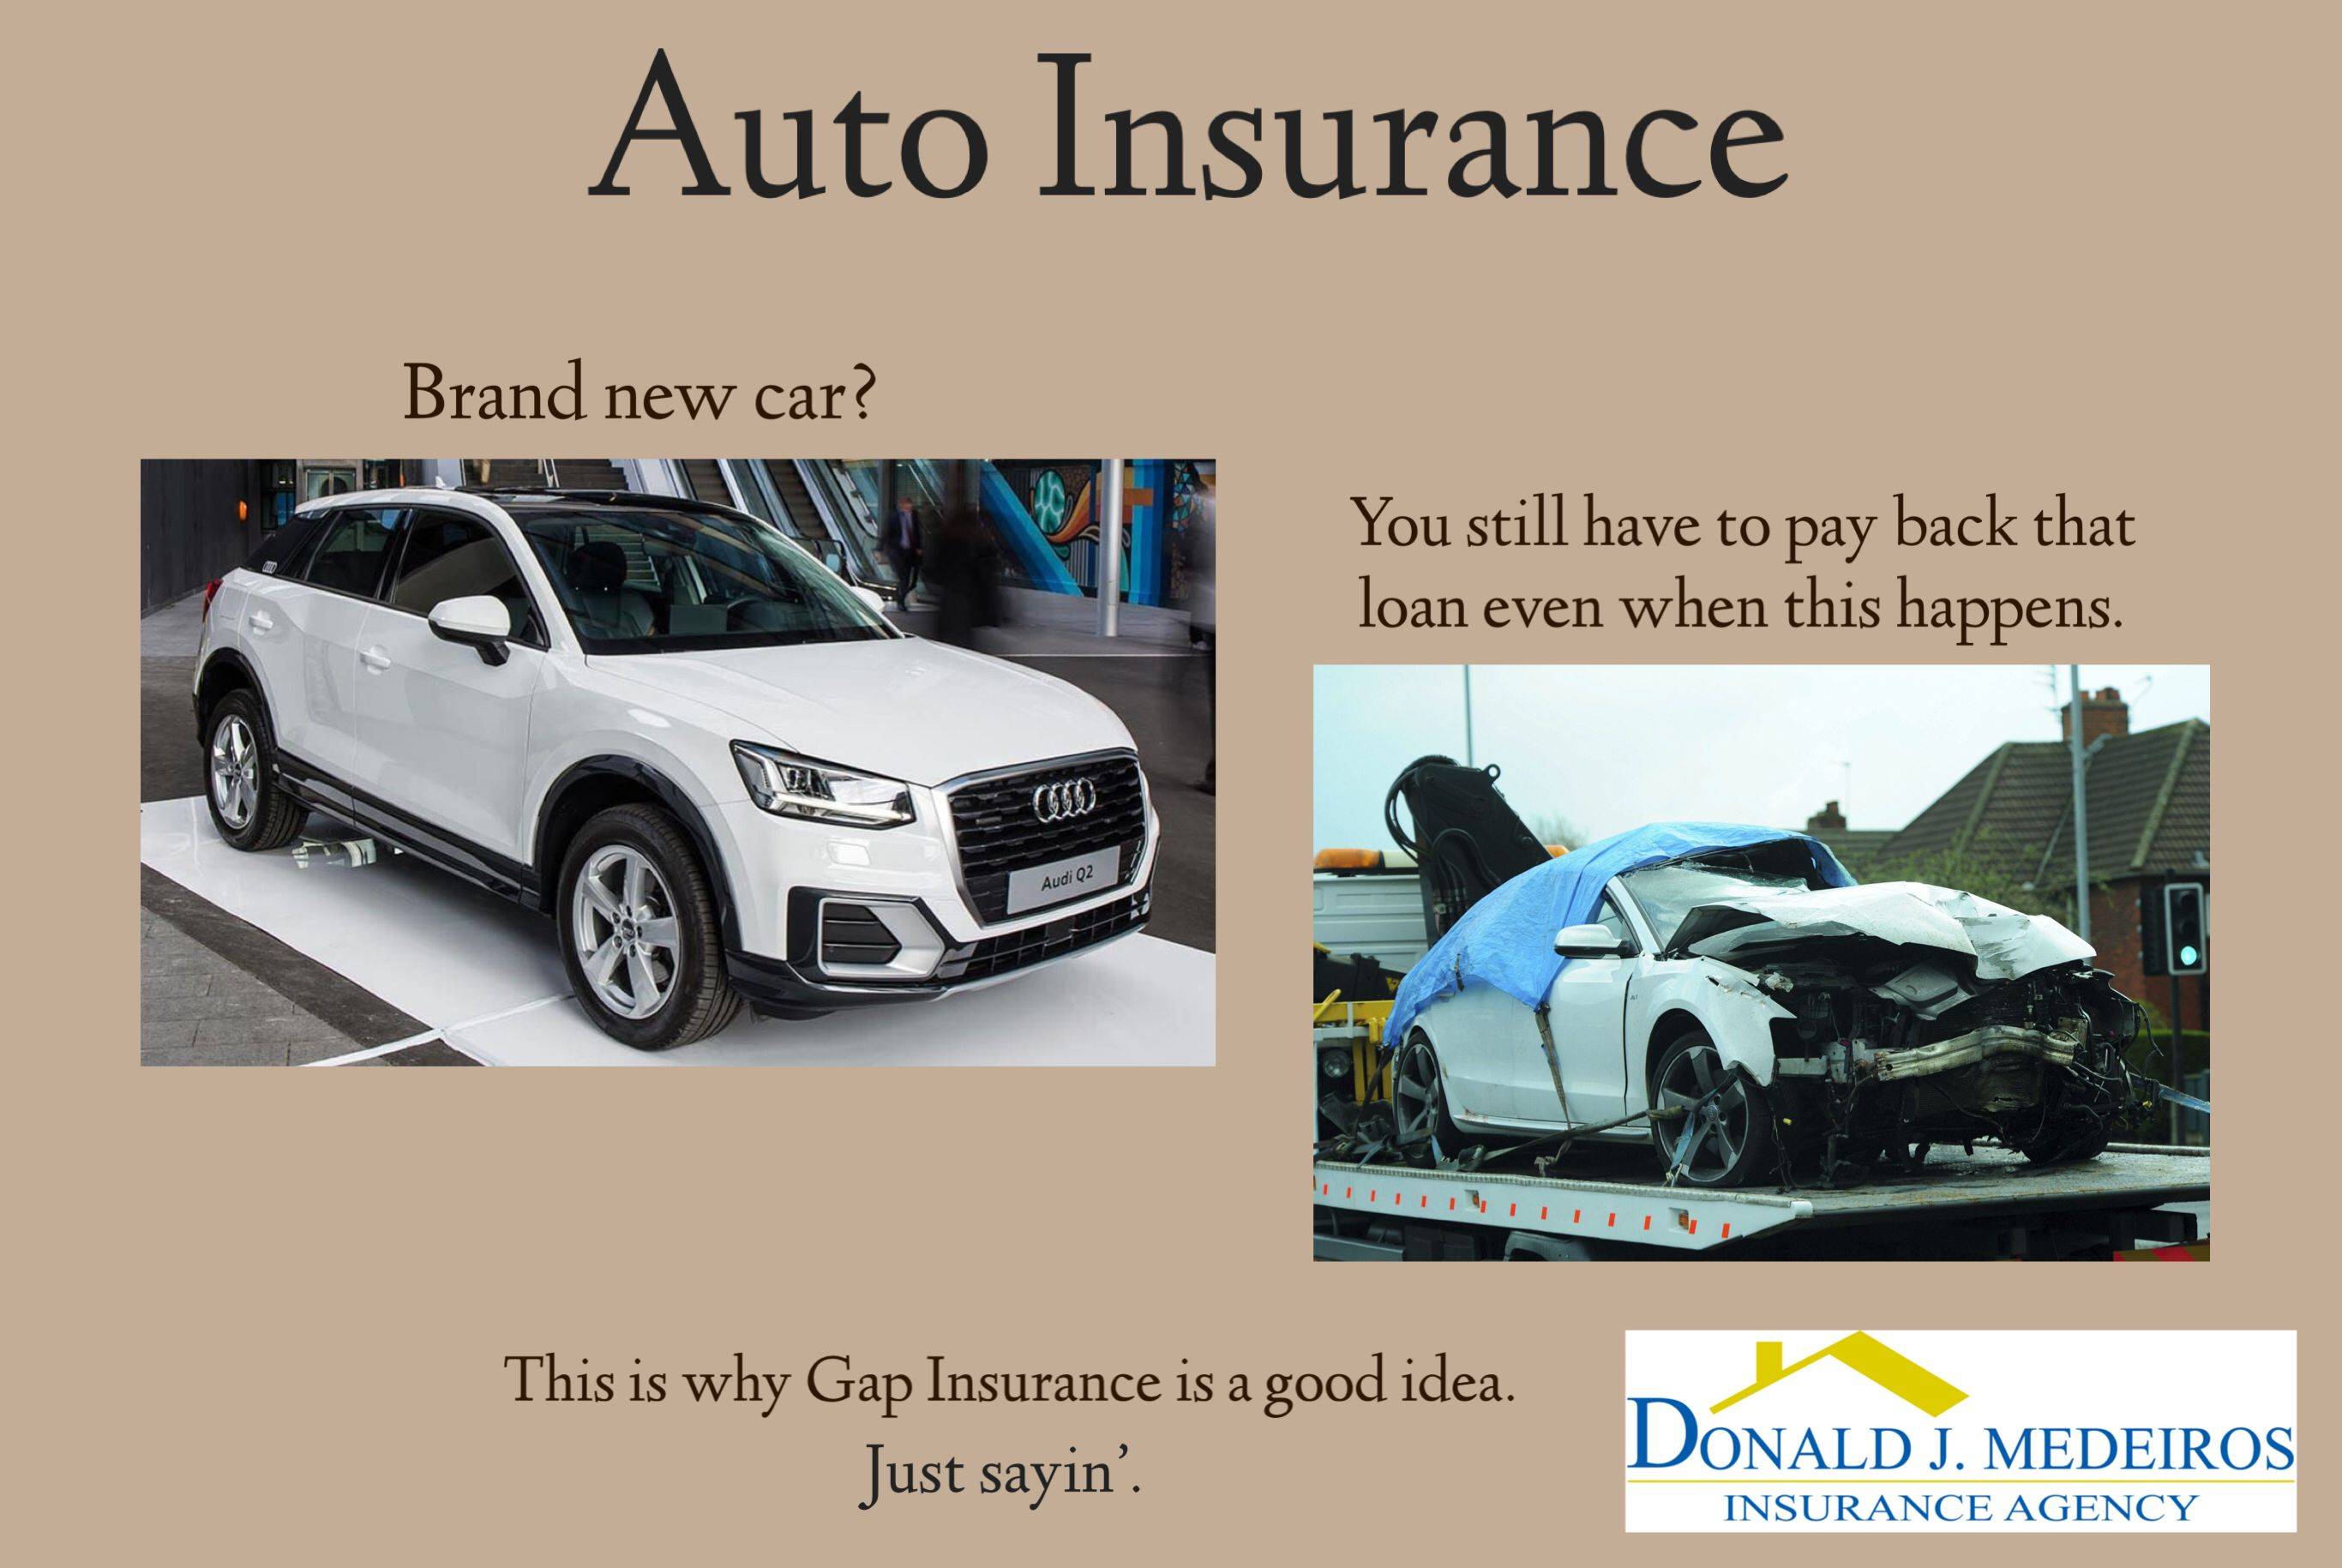 Gap Insurance A Great Idea For That New Car Insurance Agency